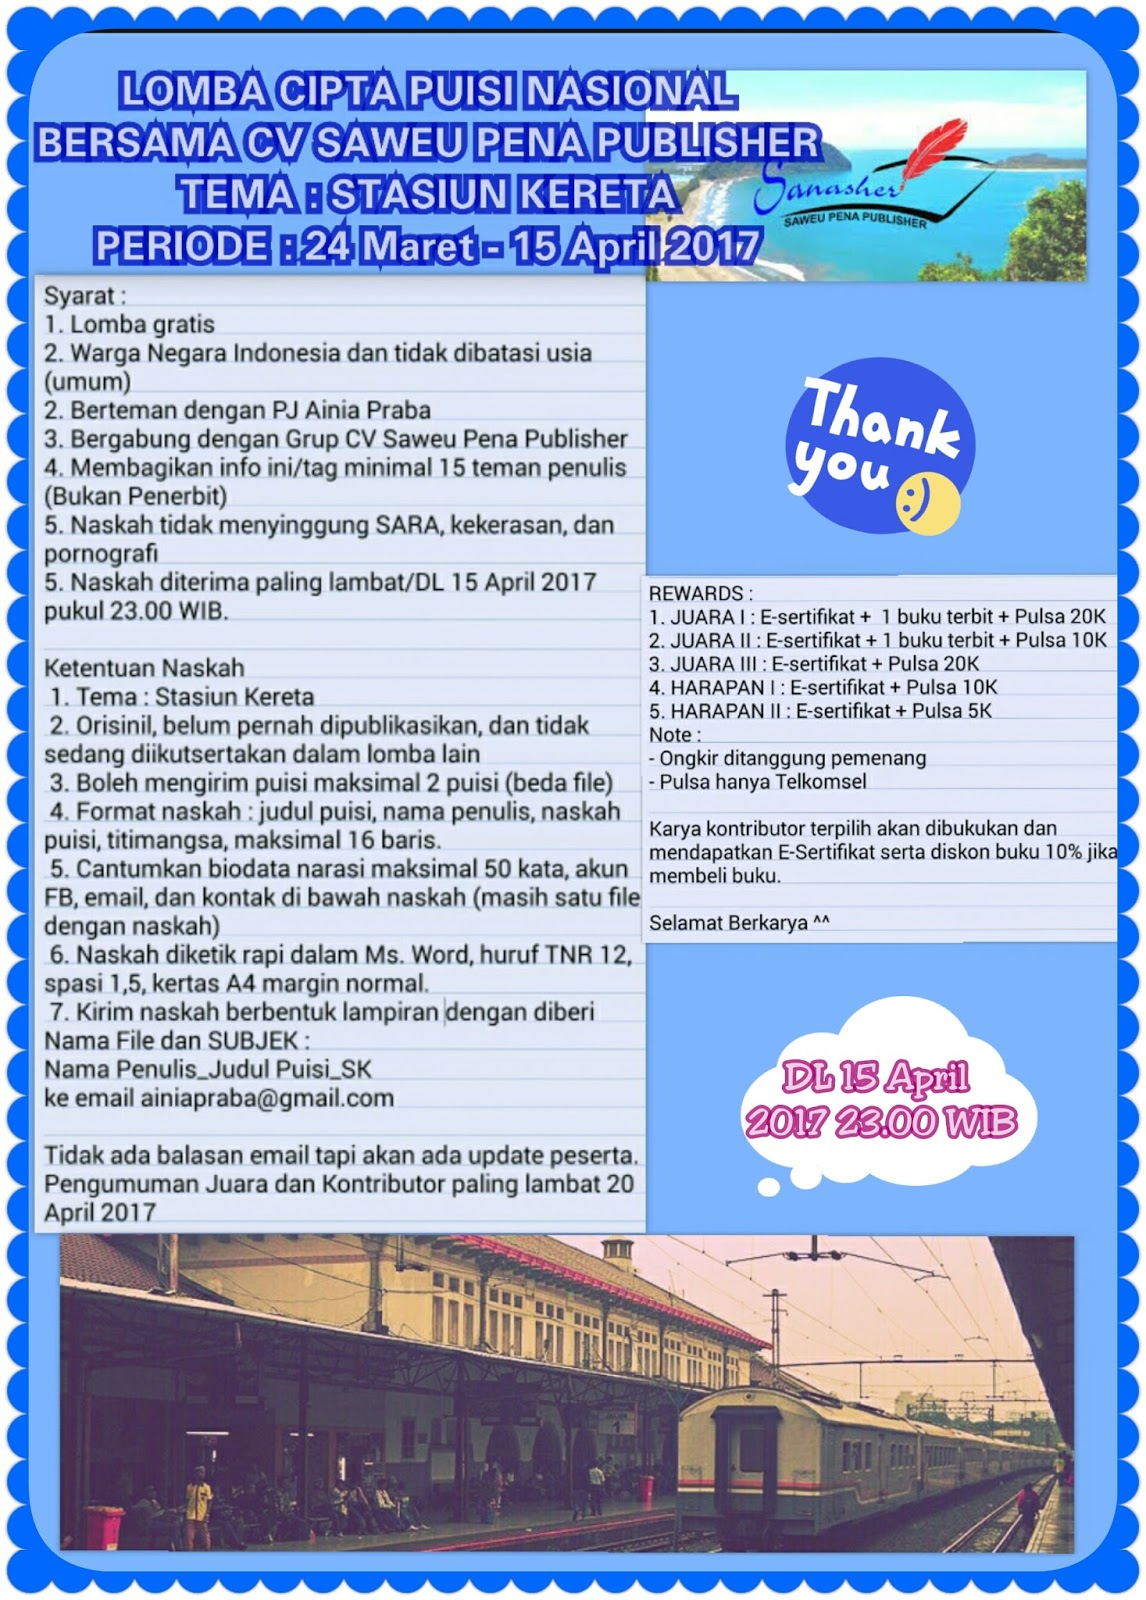 Informasi Lomba Cipta Puisi Nasional by CV Saweu Pena Publisher Deadline 15 April 2017